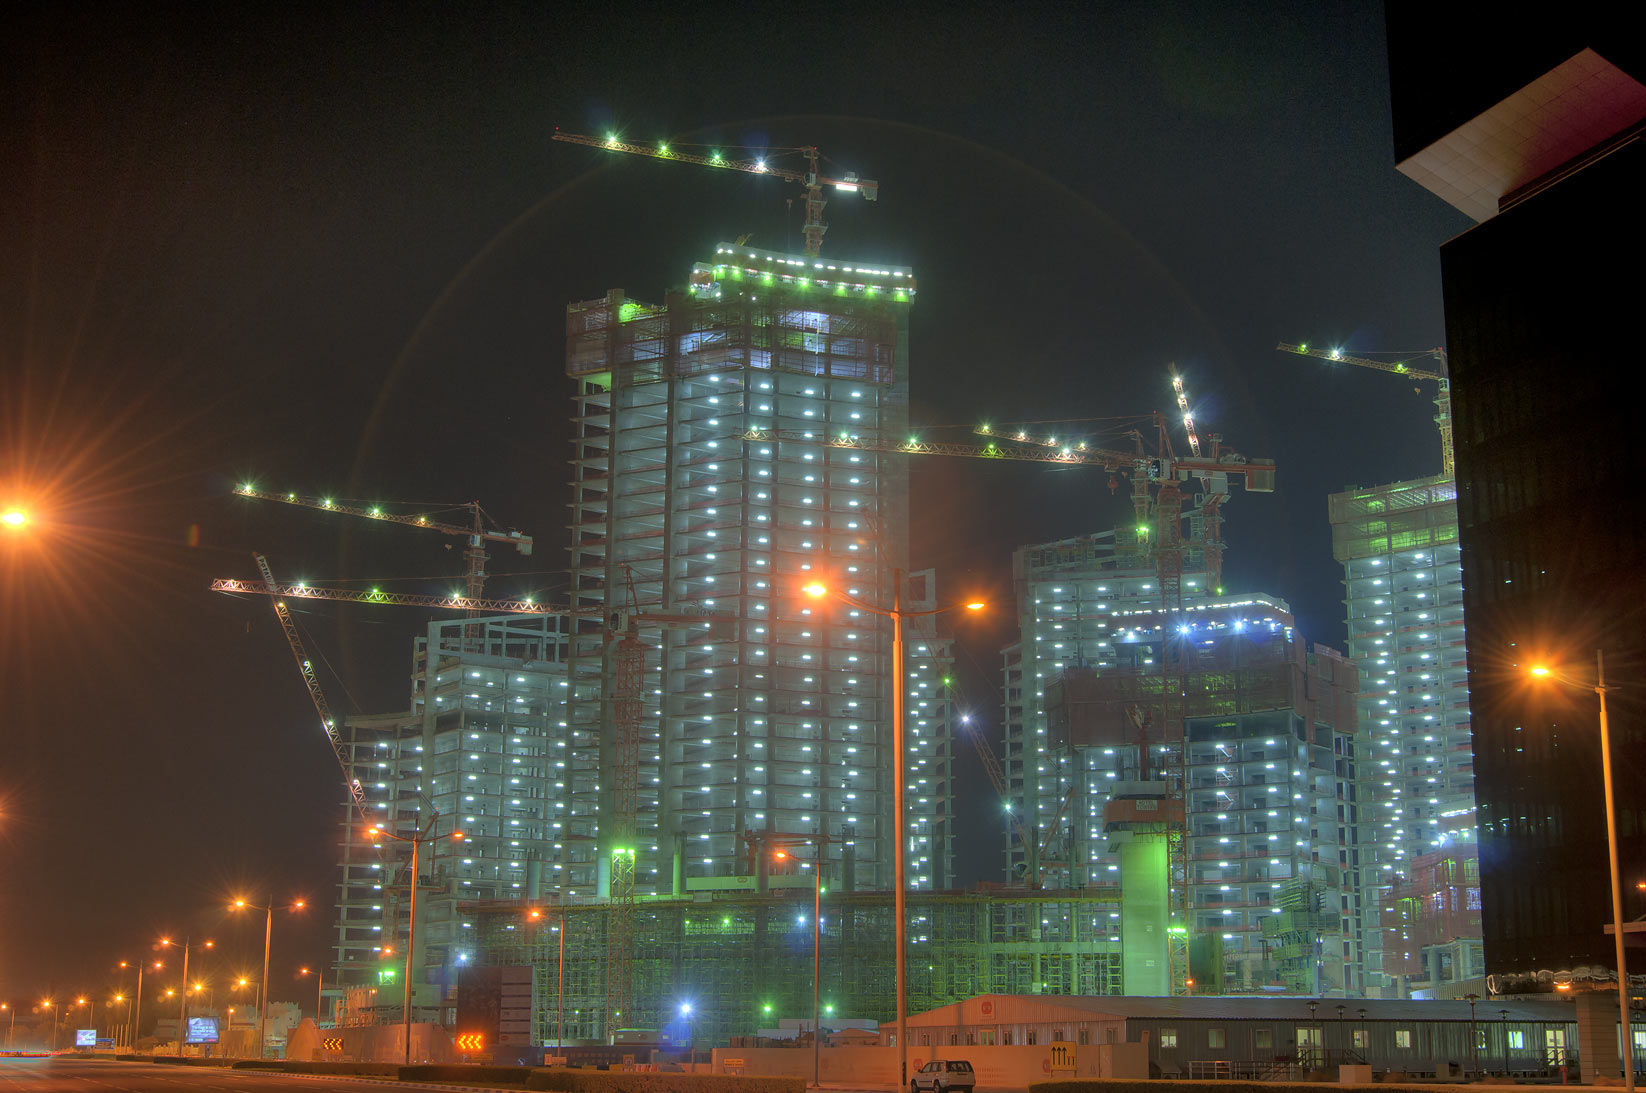 Barwa Financial Center, under construction. Doha, Qatar